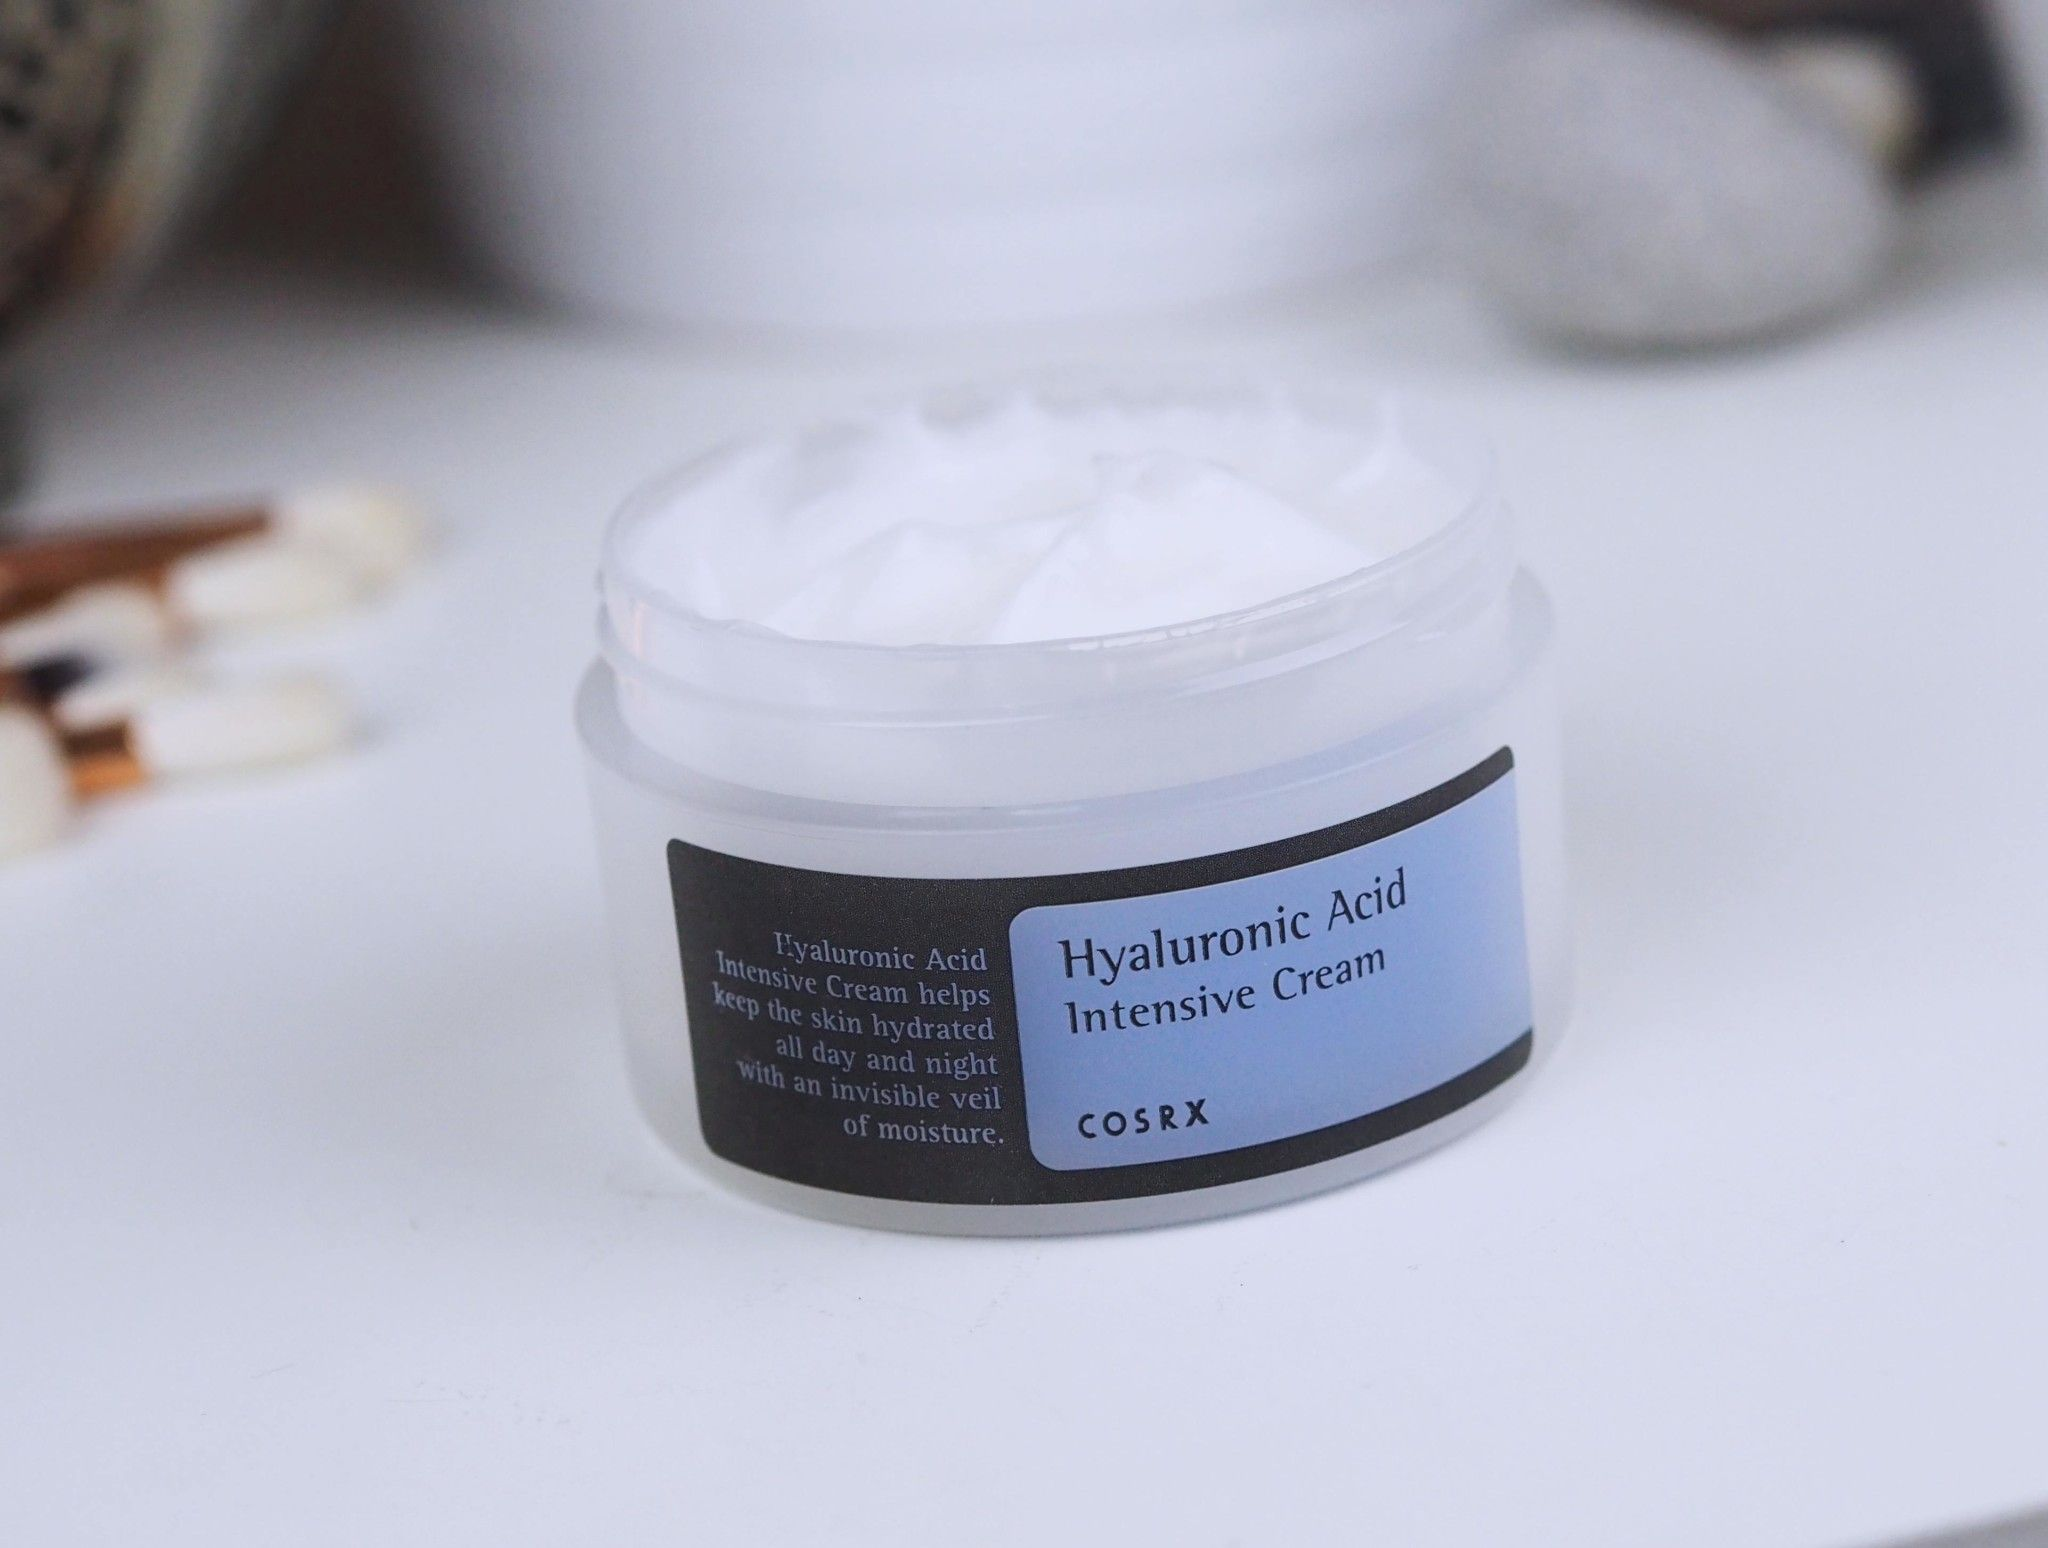 Hyaluronic Acid Intensive Cream by cosrx #21